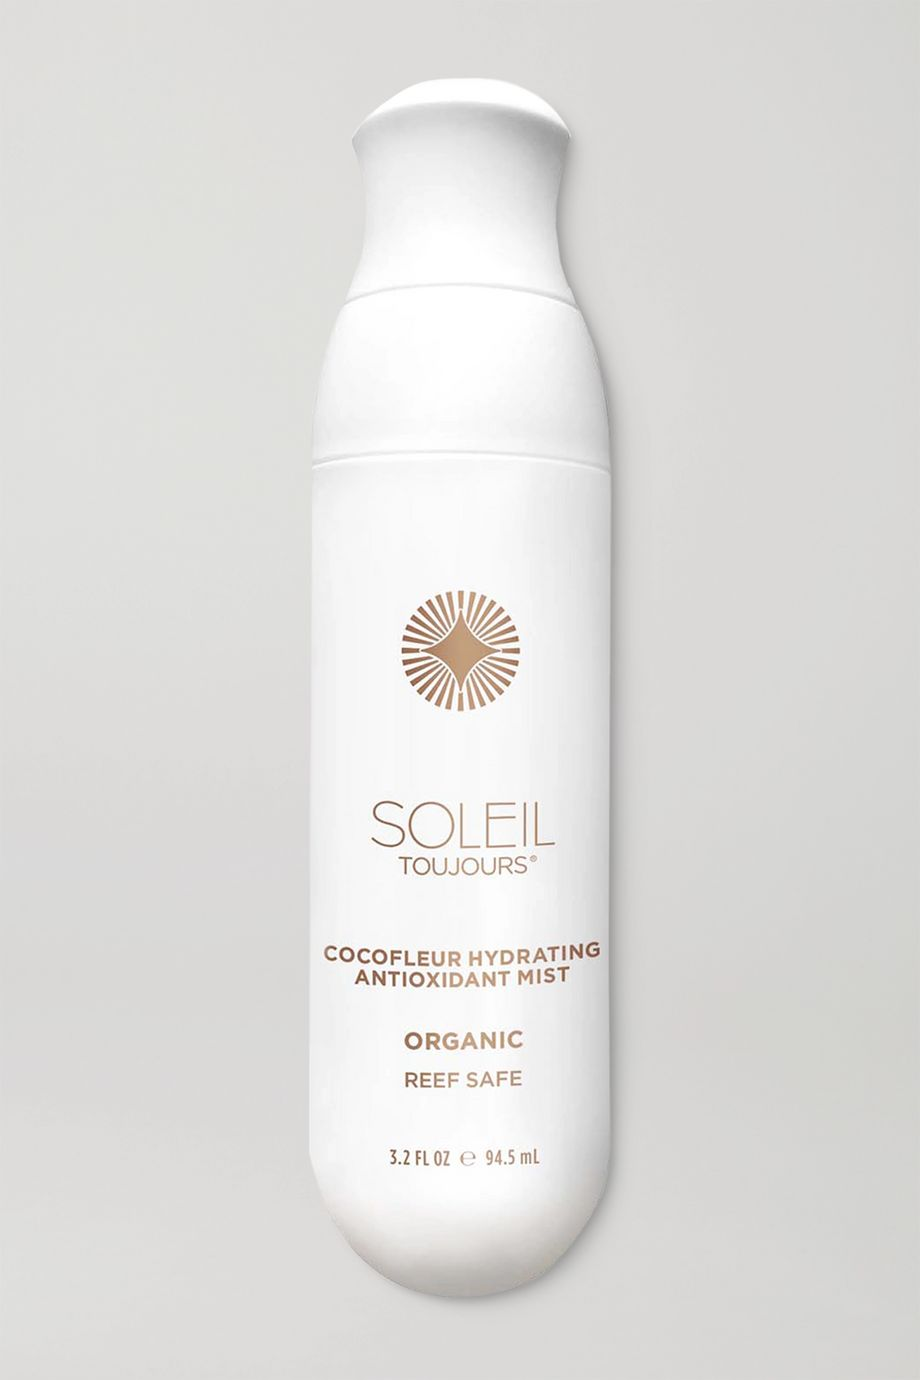 Soleil Toujours Organic CocoFleur Hydrating Antioxidant Mist, 94.5ml